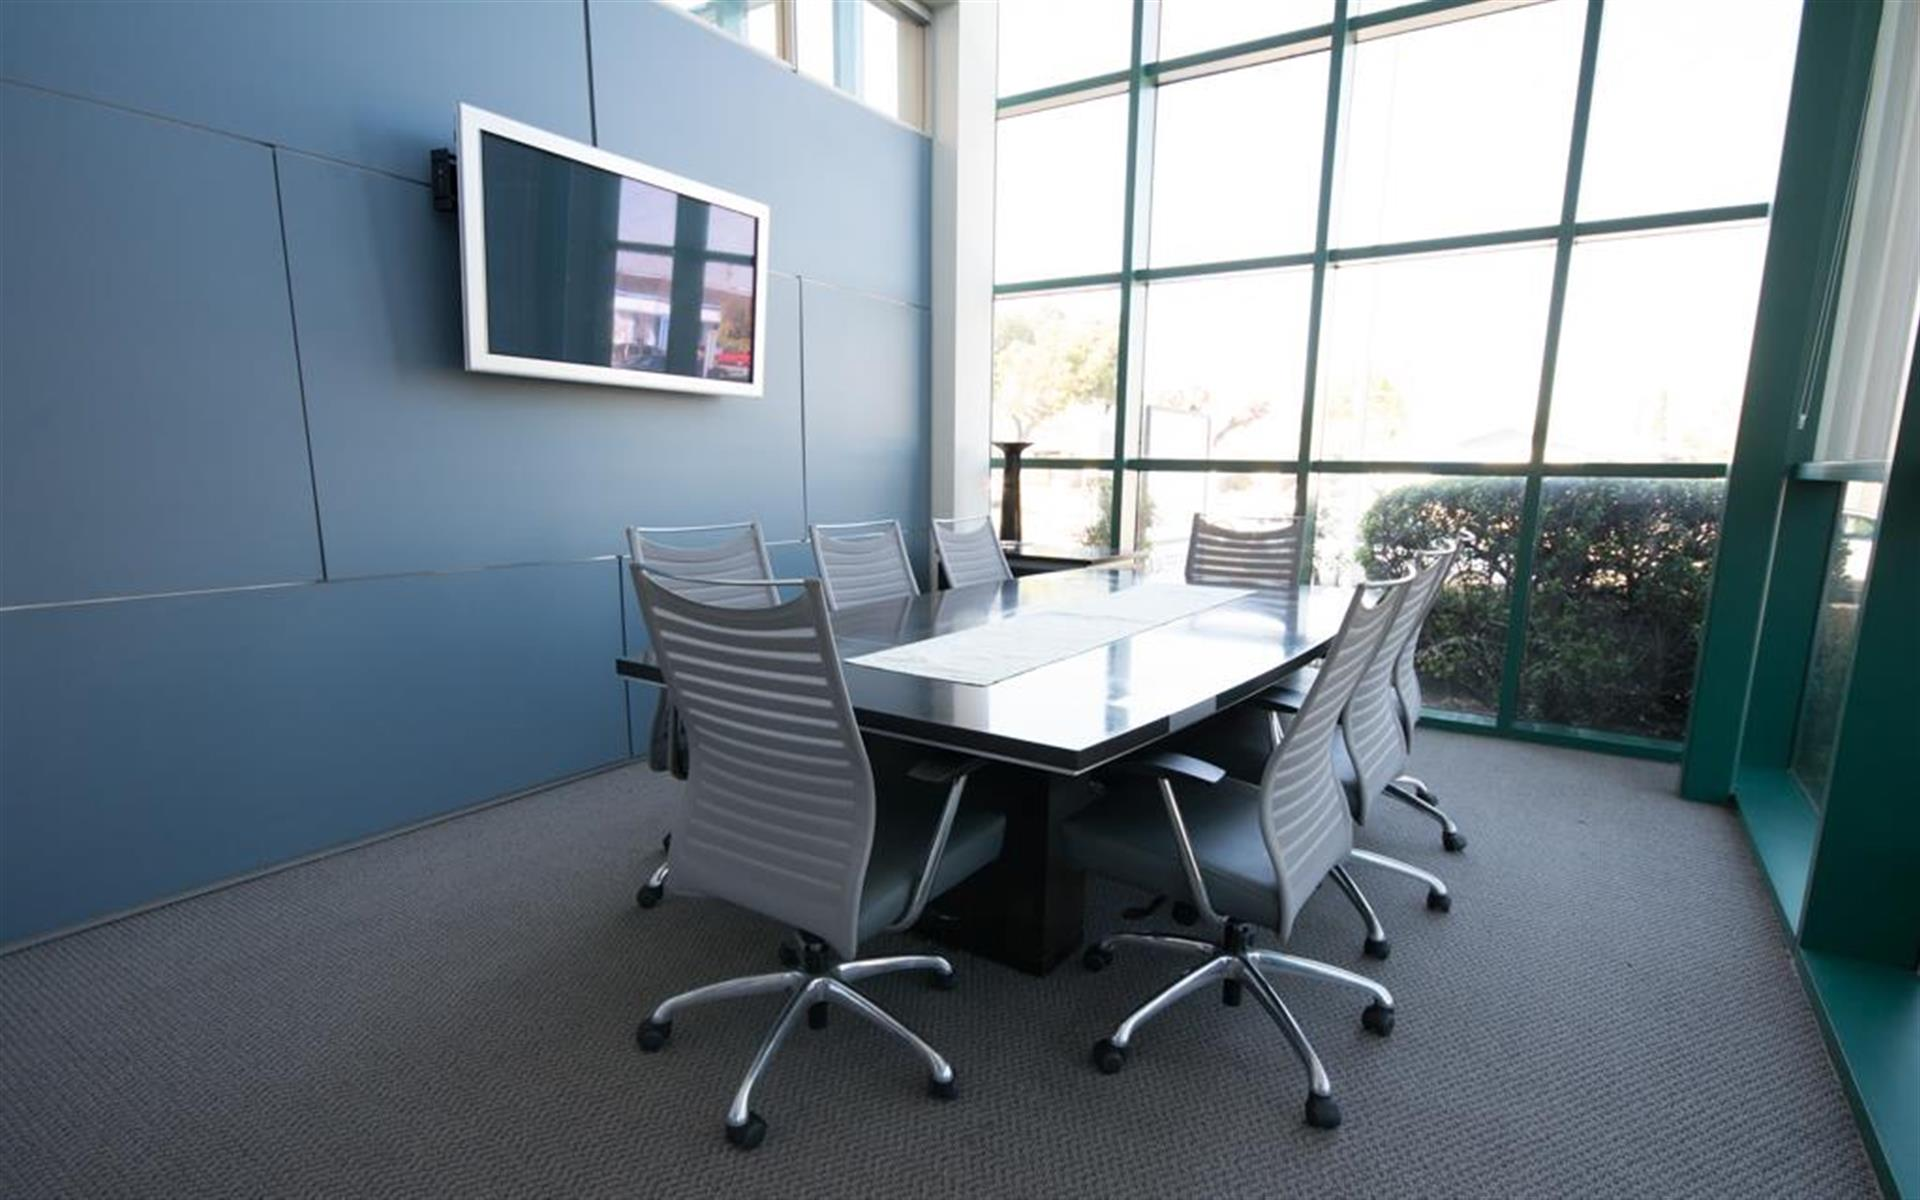 Silicon Valley Business Center - Conference Room 1, large